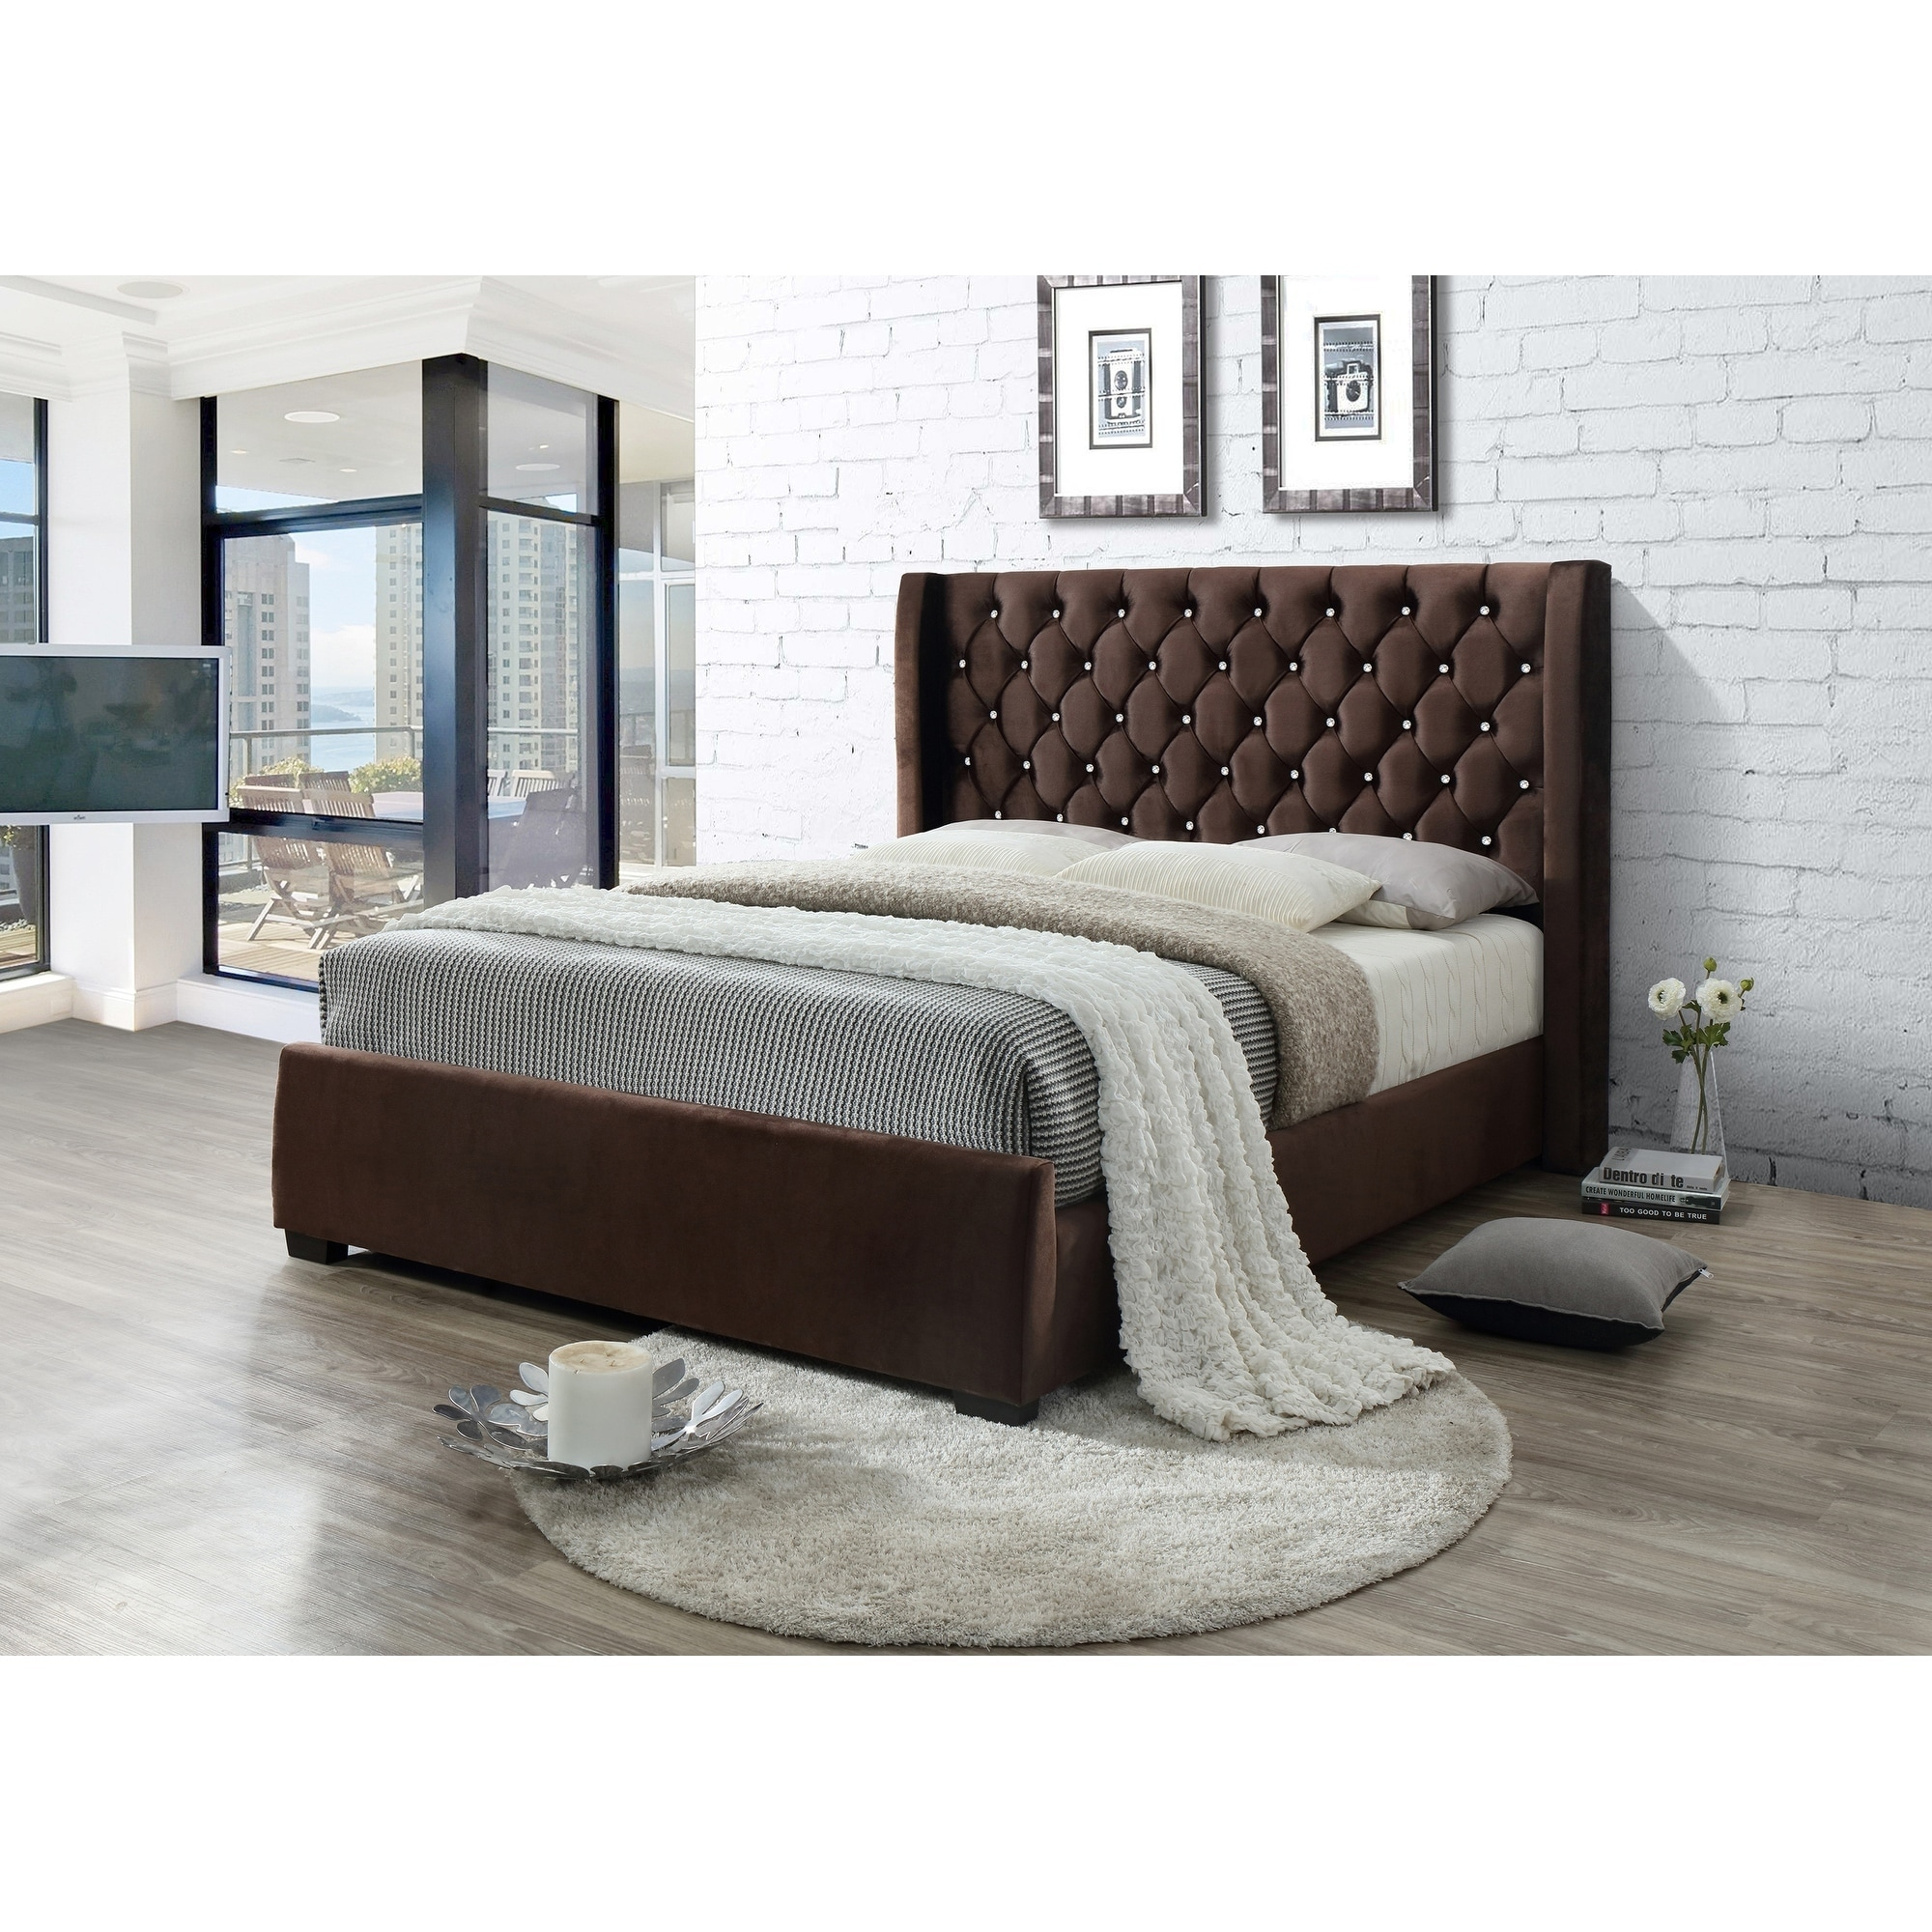 Brown Tufted Modern Velvet Wingback Queen Platform Bed With A 65 In Tall Headboard No Box Spring Required Overstock 25613701